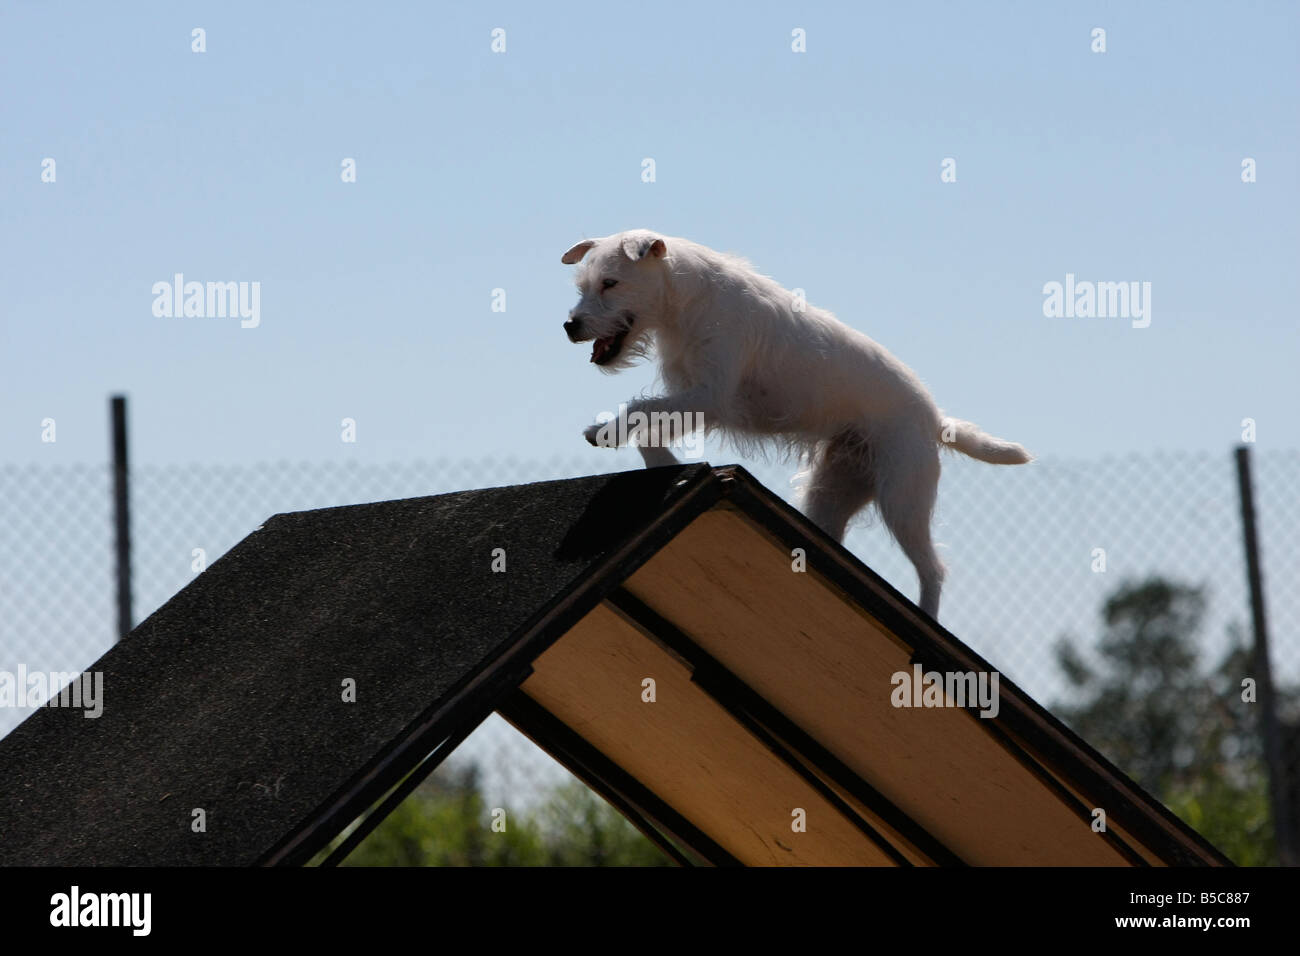 Terrier jumping across the top of an a frame at a dog agility trial ...